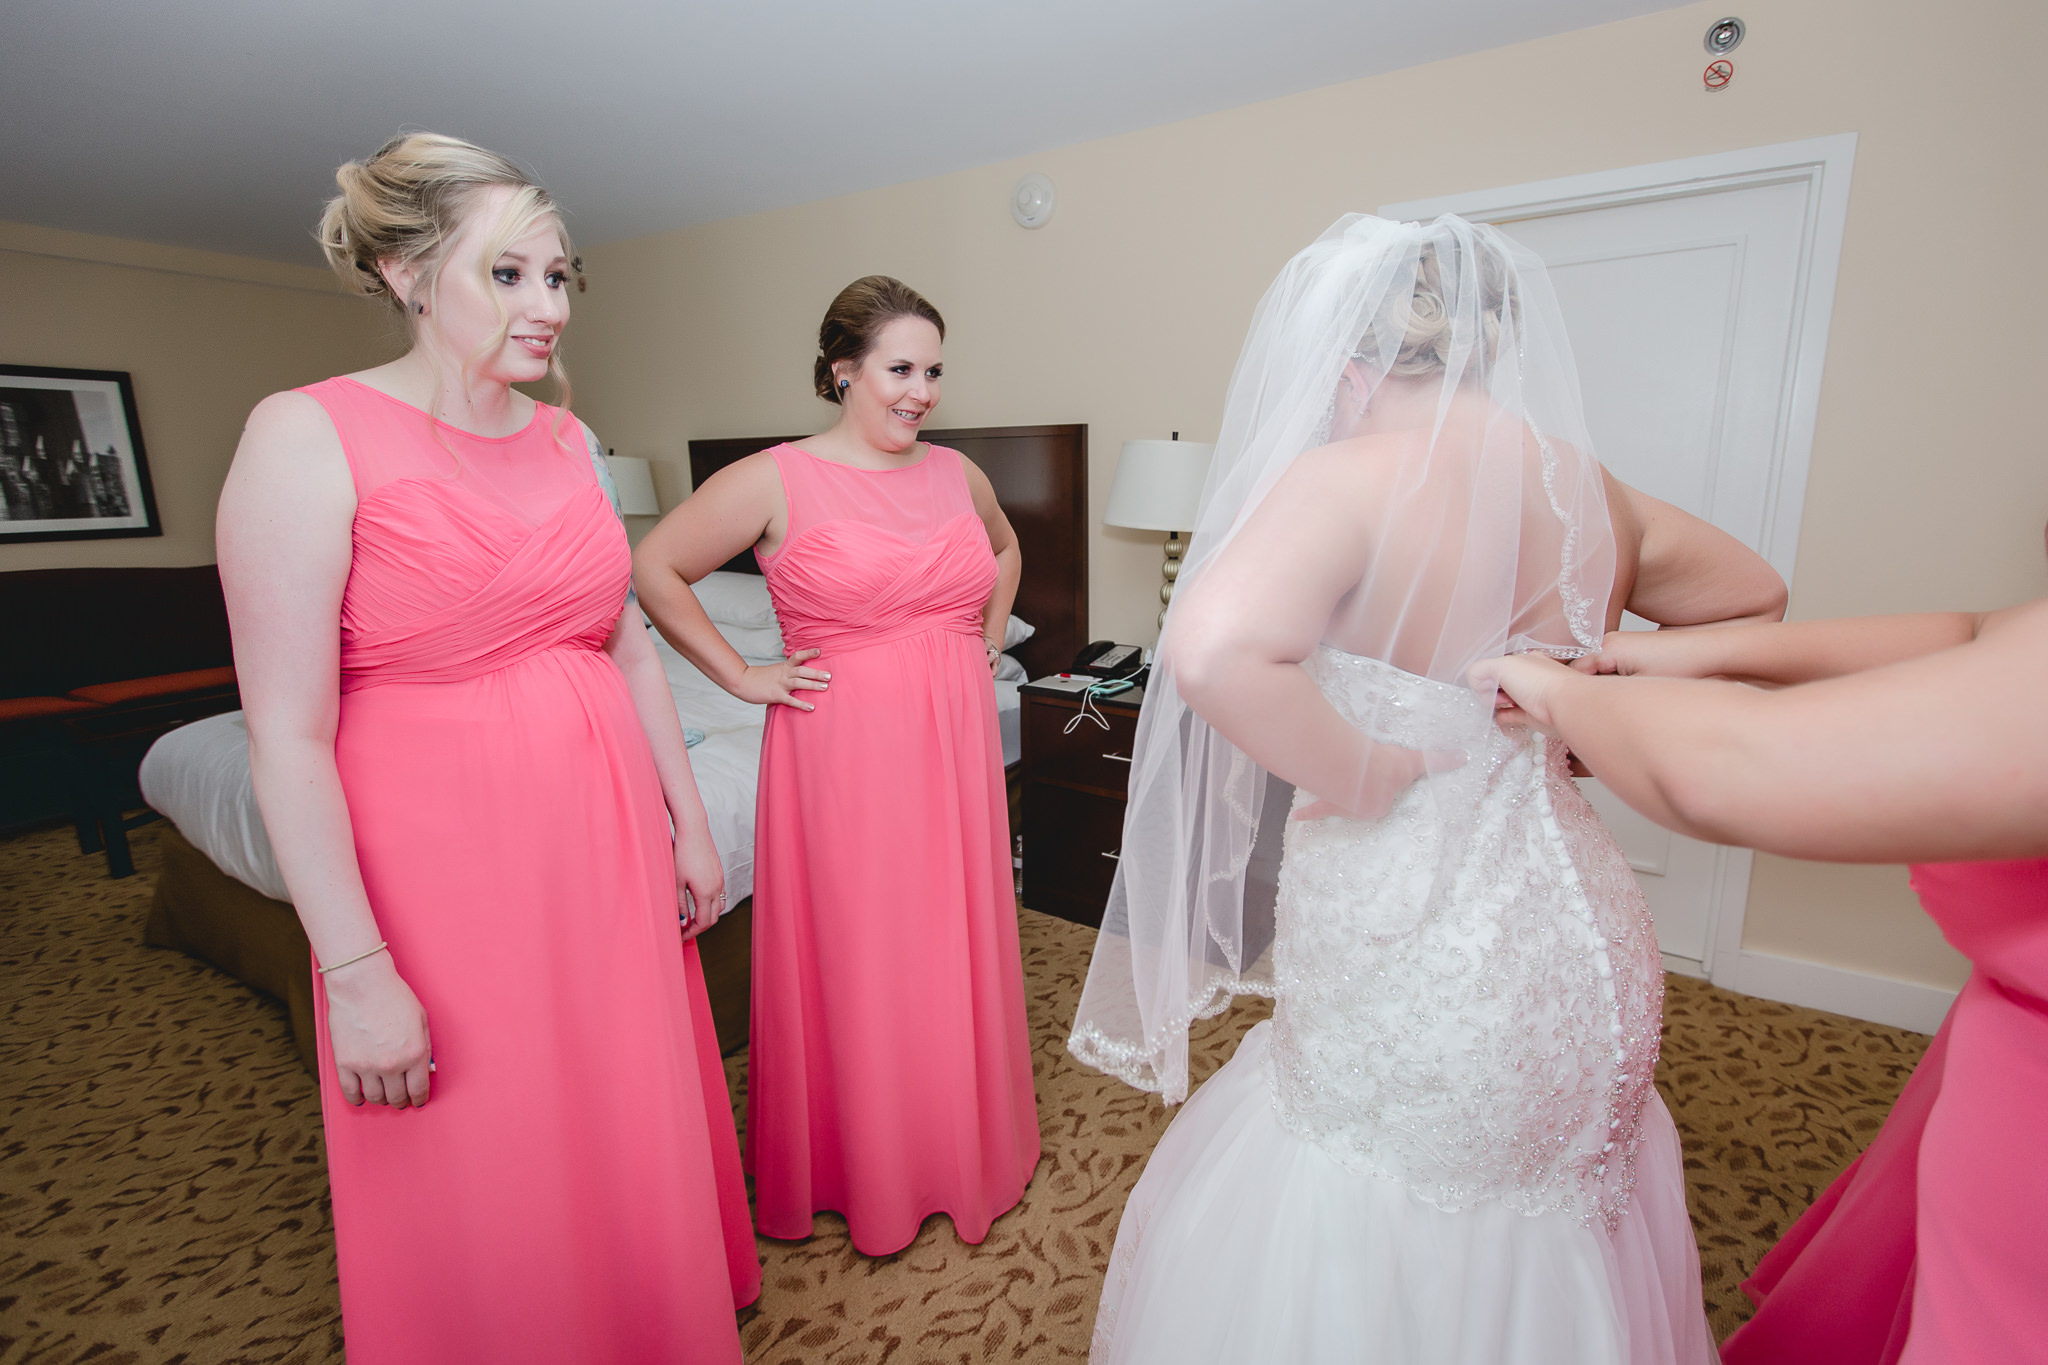 Bridesmaids smile as the bride gets dressed at the Pittsburgh Airport Marriott